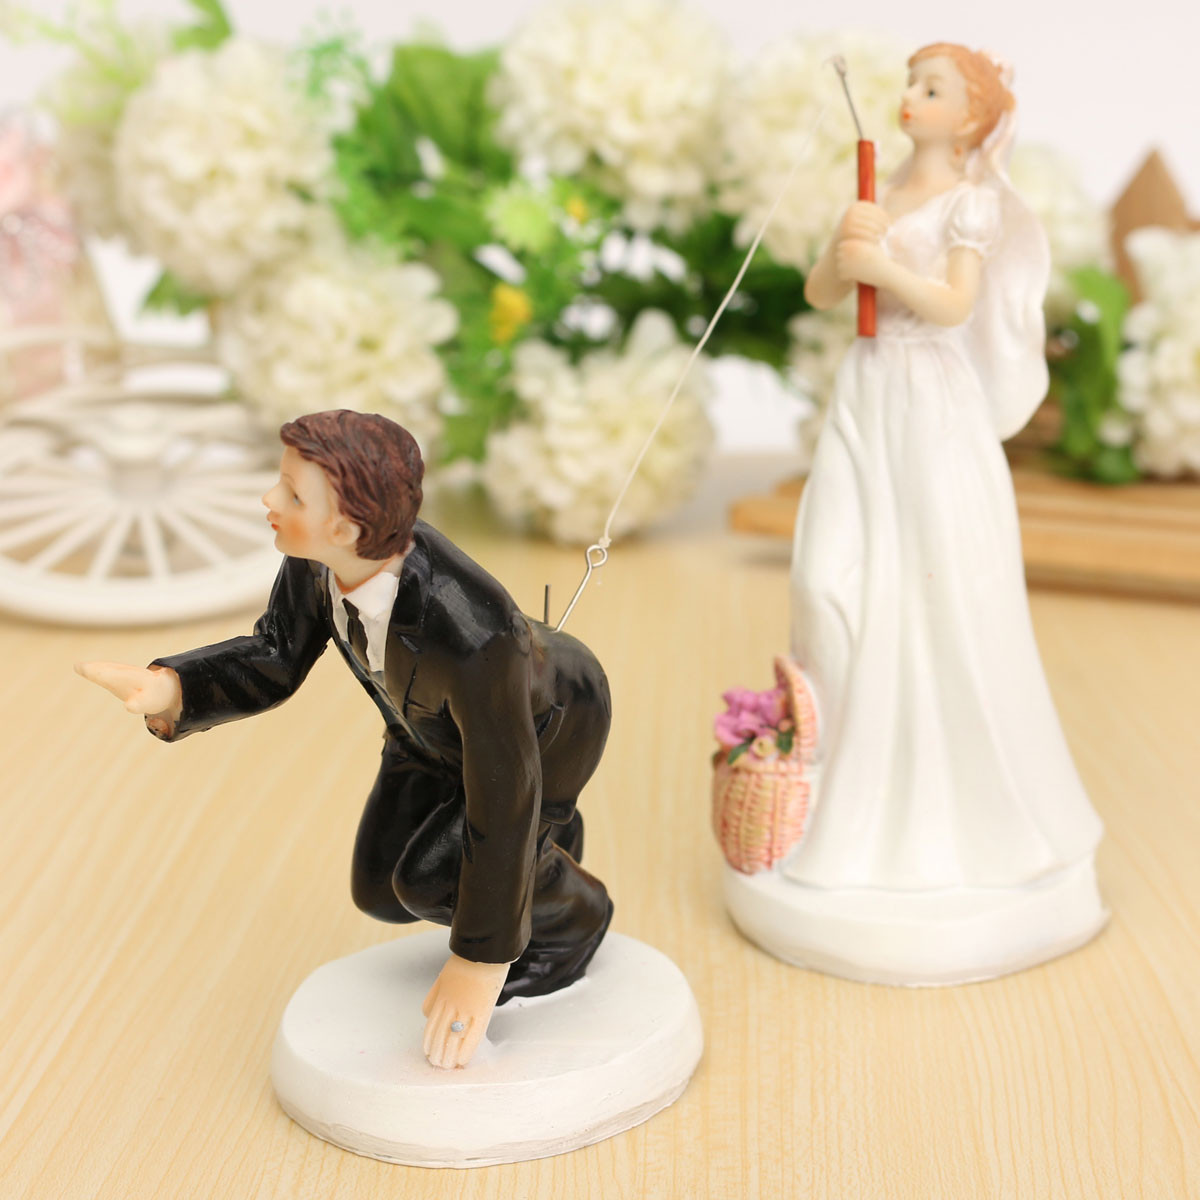 ROMANTIC FUNNY WEDDING CAKE TOPPER FIGURE BRIDE GROOM COUPLE BRIDAL ...